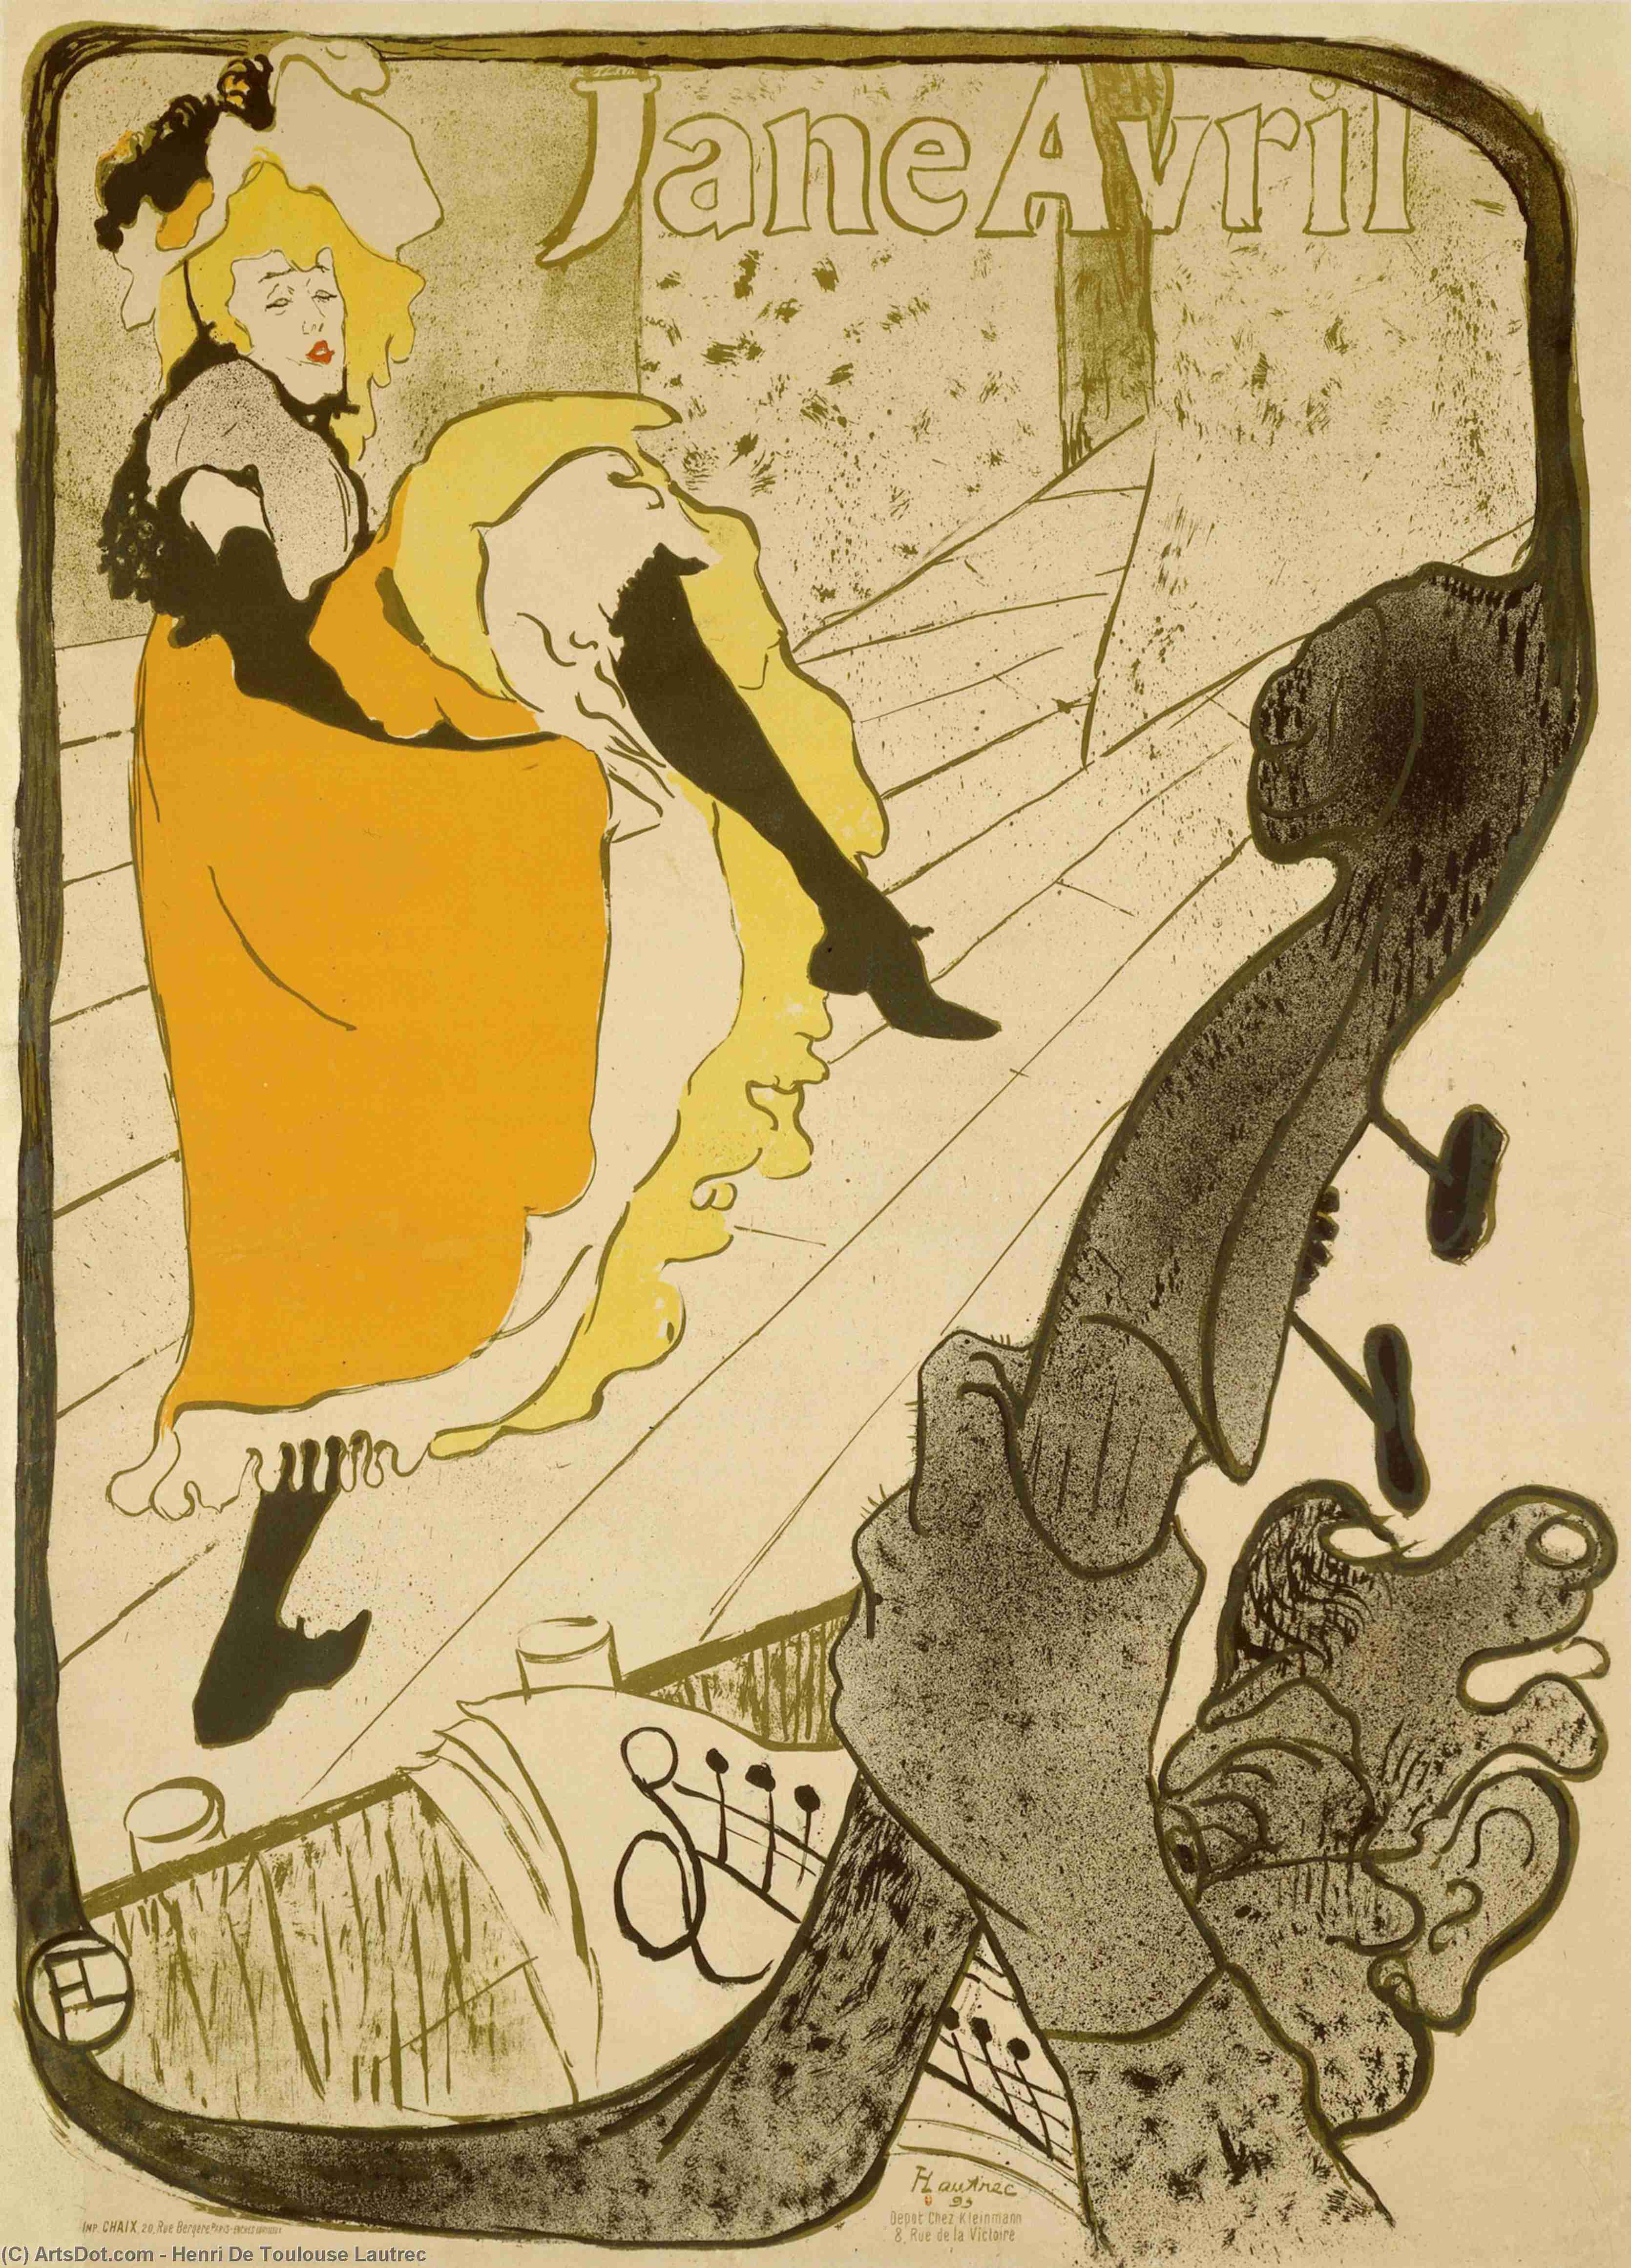 jane avril au jardin von Paris untergebracht von Henri De Toulouse Lautrec (1864-1901, Second French Empire)